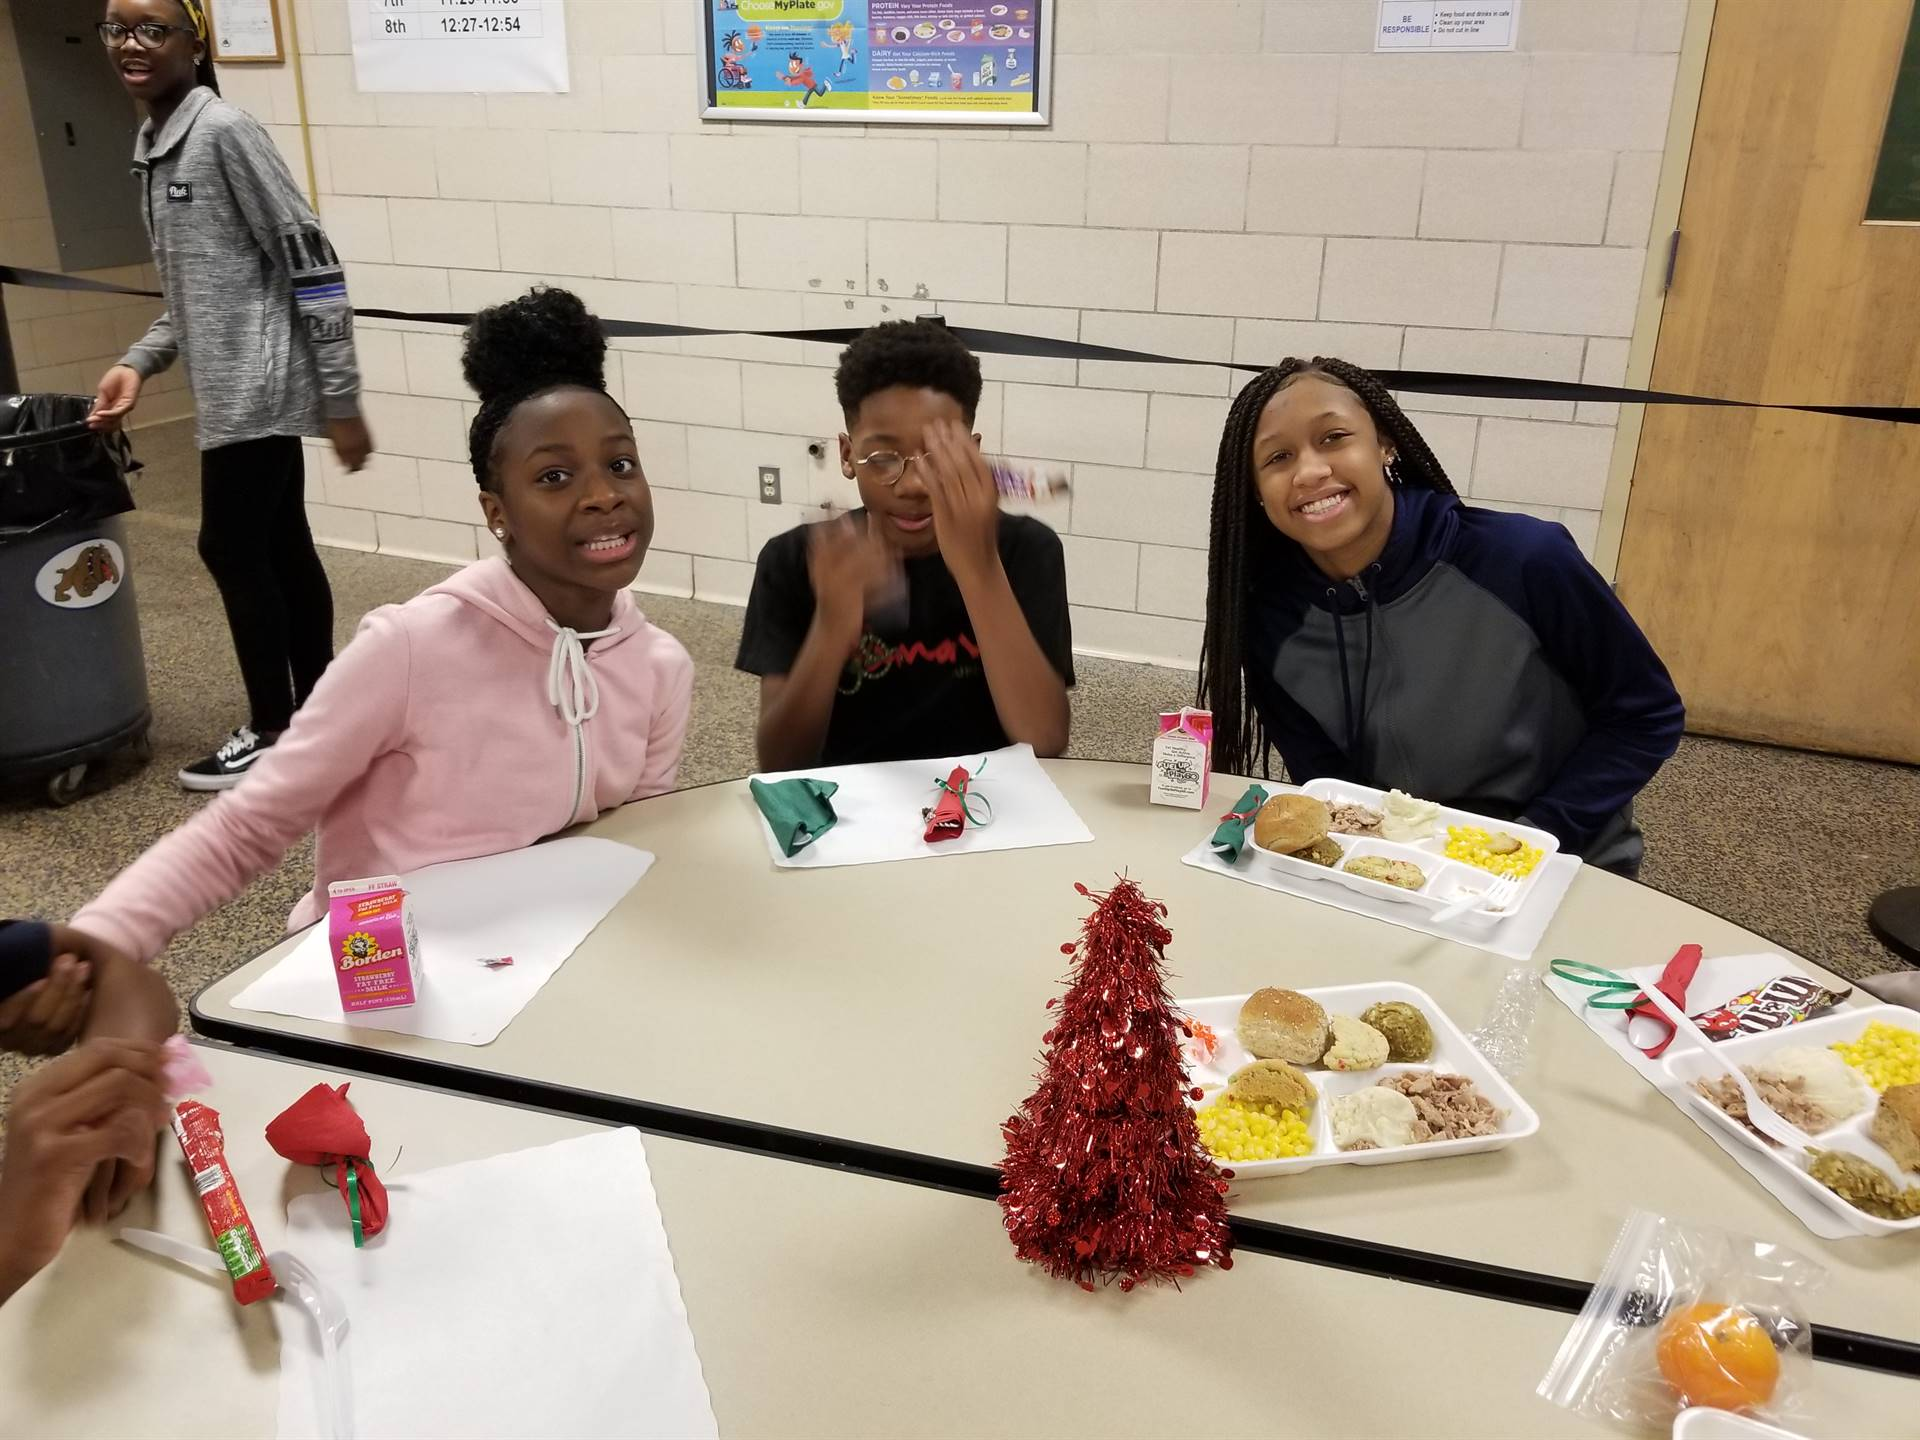 Students enjoying the feast in the cafeteria.